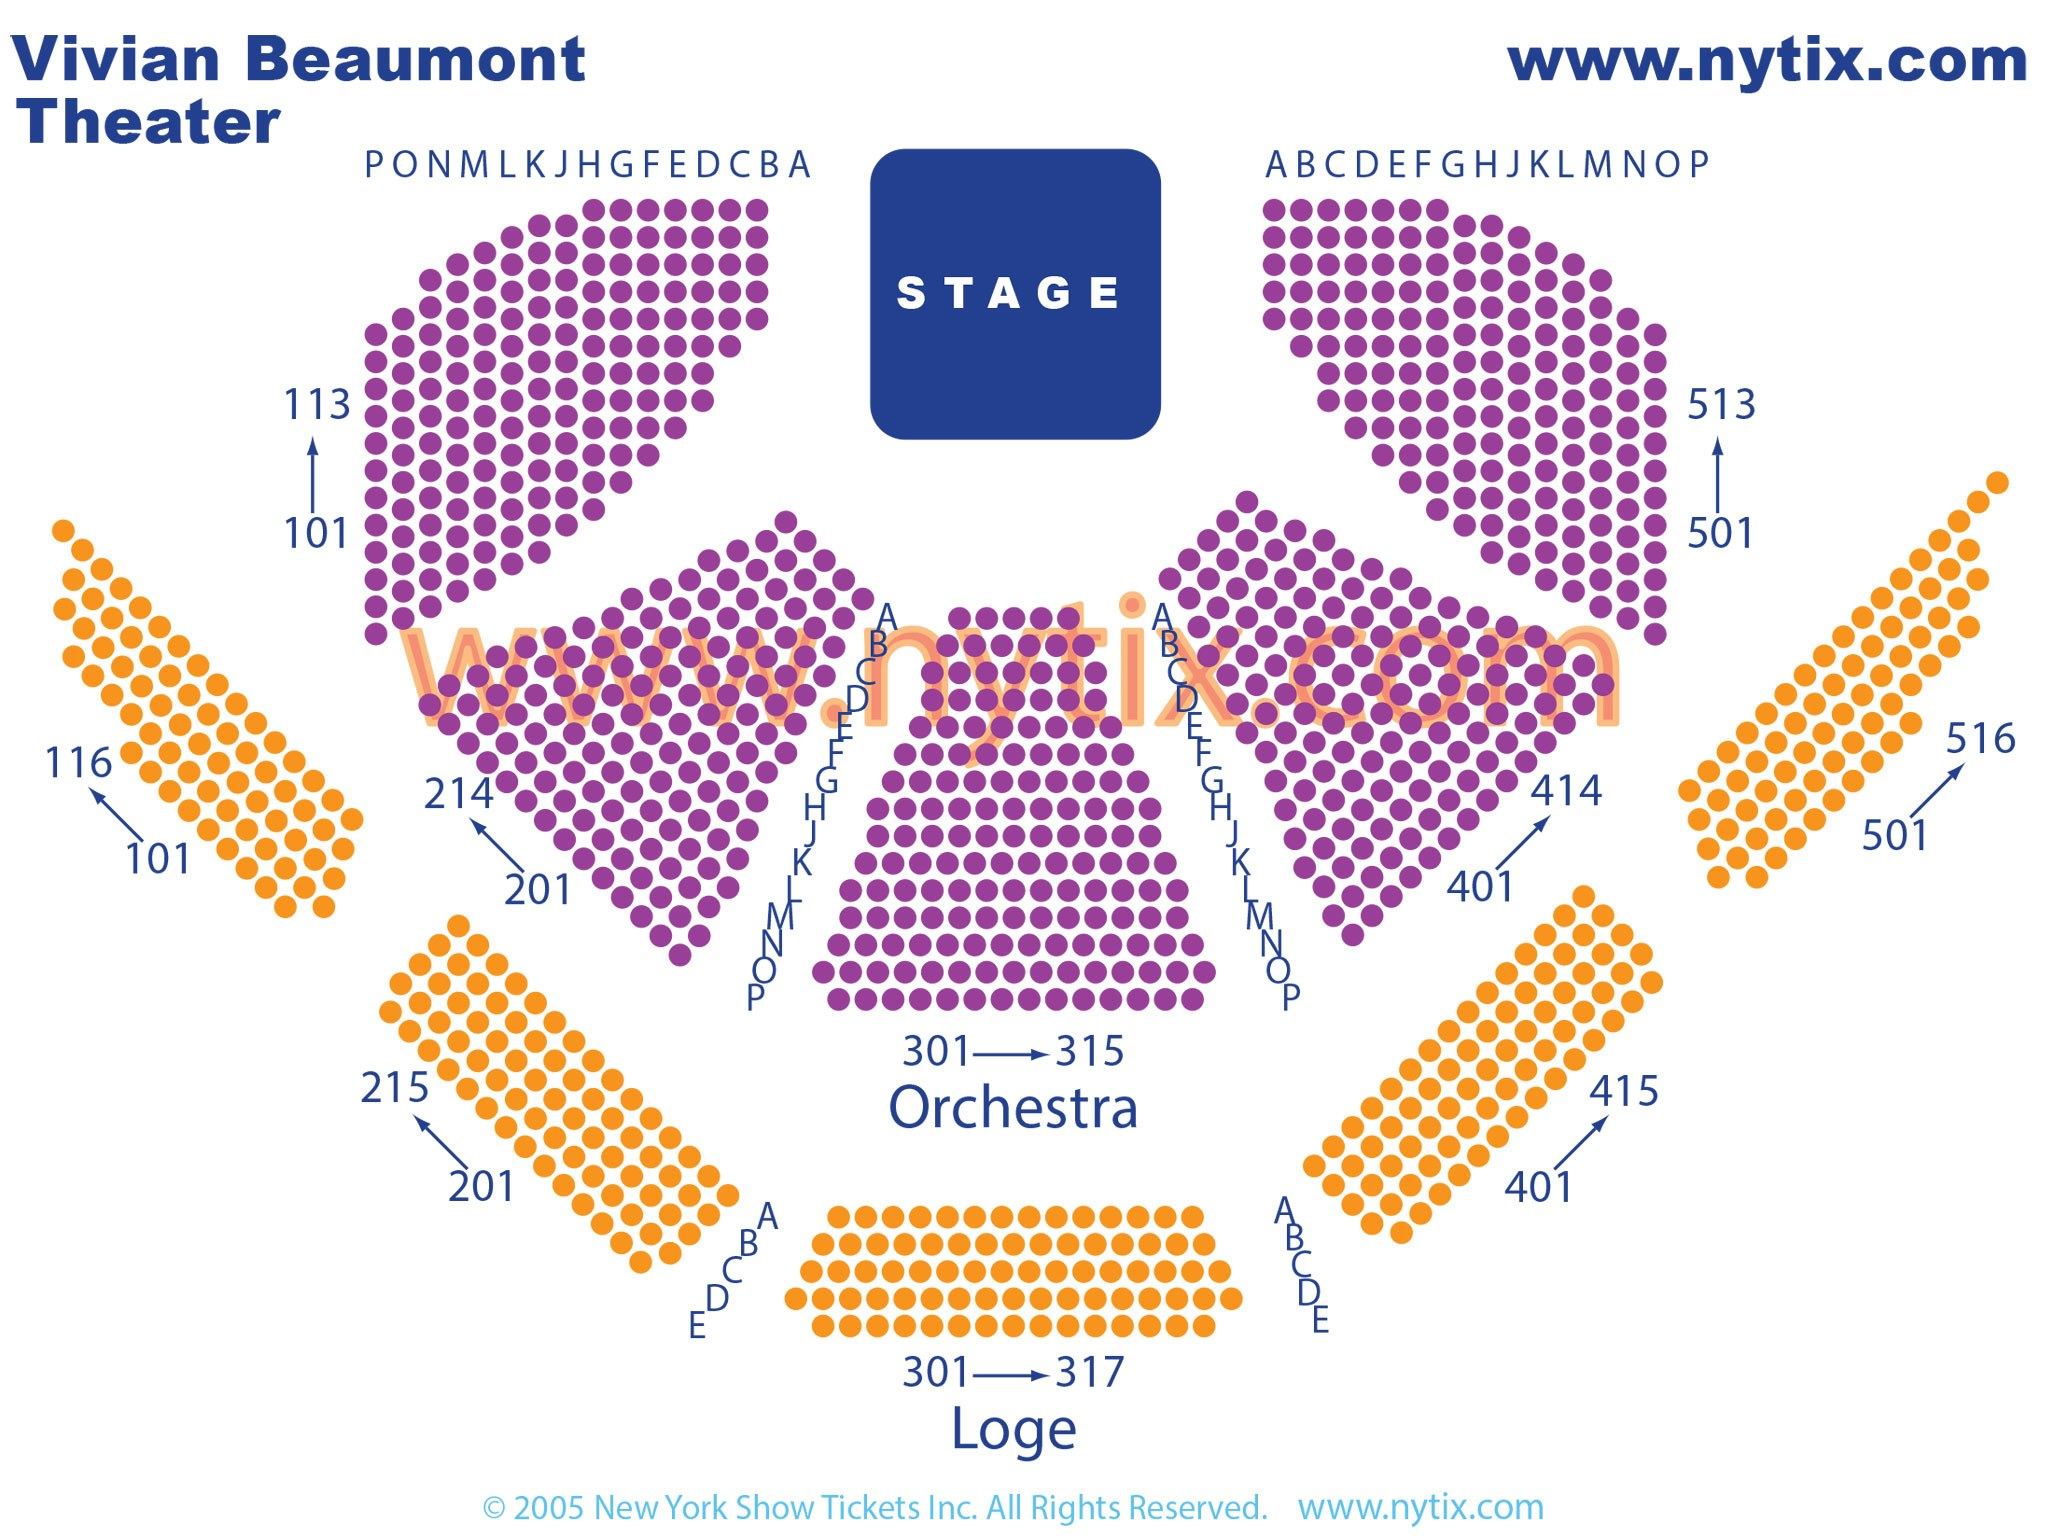 Vivian Beaumont Theatre Seating Chart